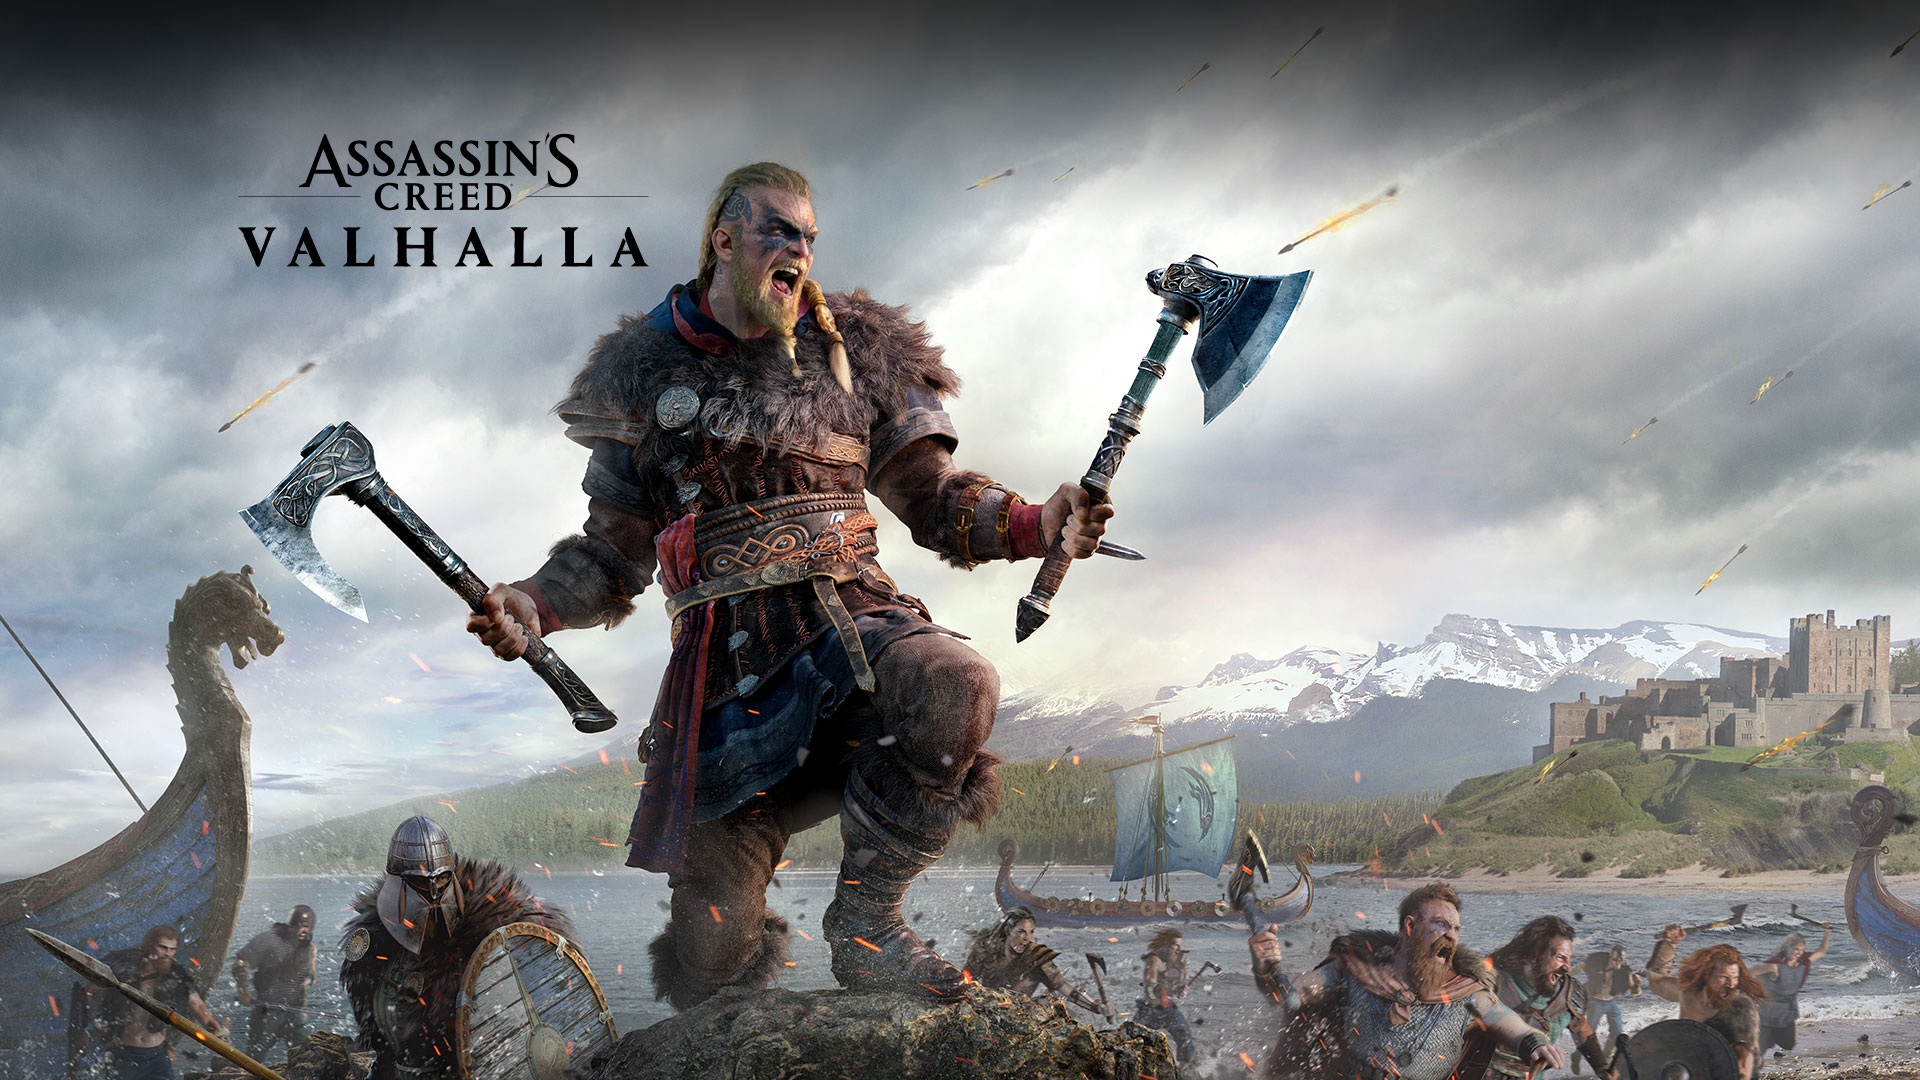 Assassin's Creed Valhalla, character with two axes during battle